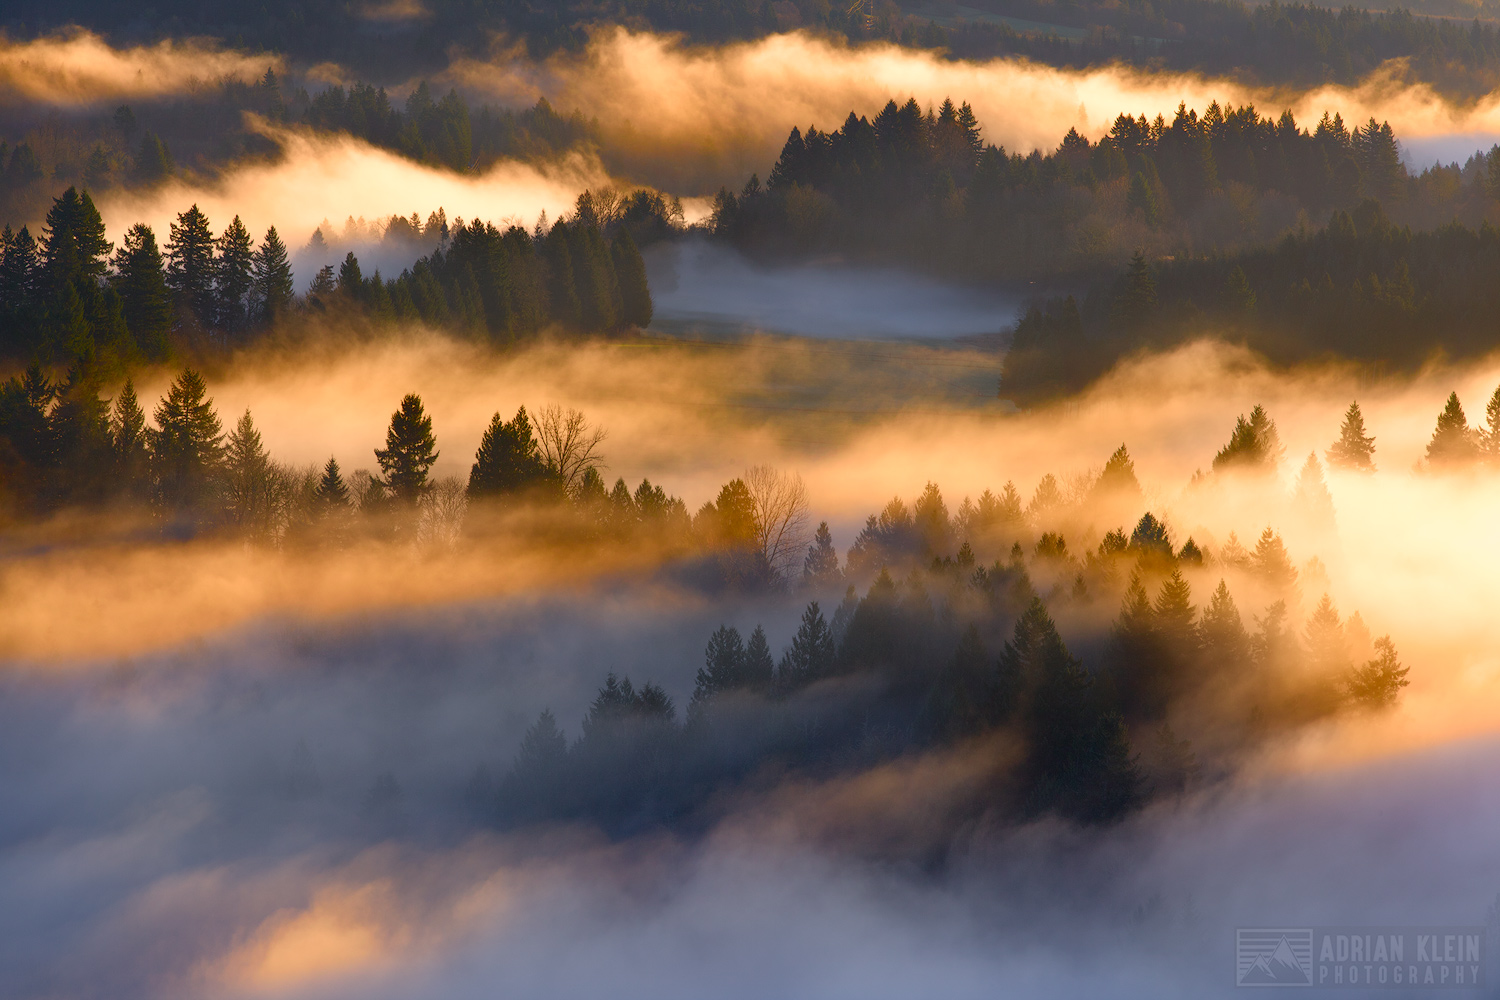 jonsrud viewpoint, sandy, oregon, valley, glow, forest, low level clouds, fog, mount hood, wilderness, farms, drifting, adrian, klein, winter, f-stop, gear, sunbeams, uplifting, cold temprature, everg, photo